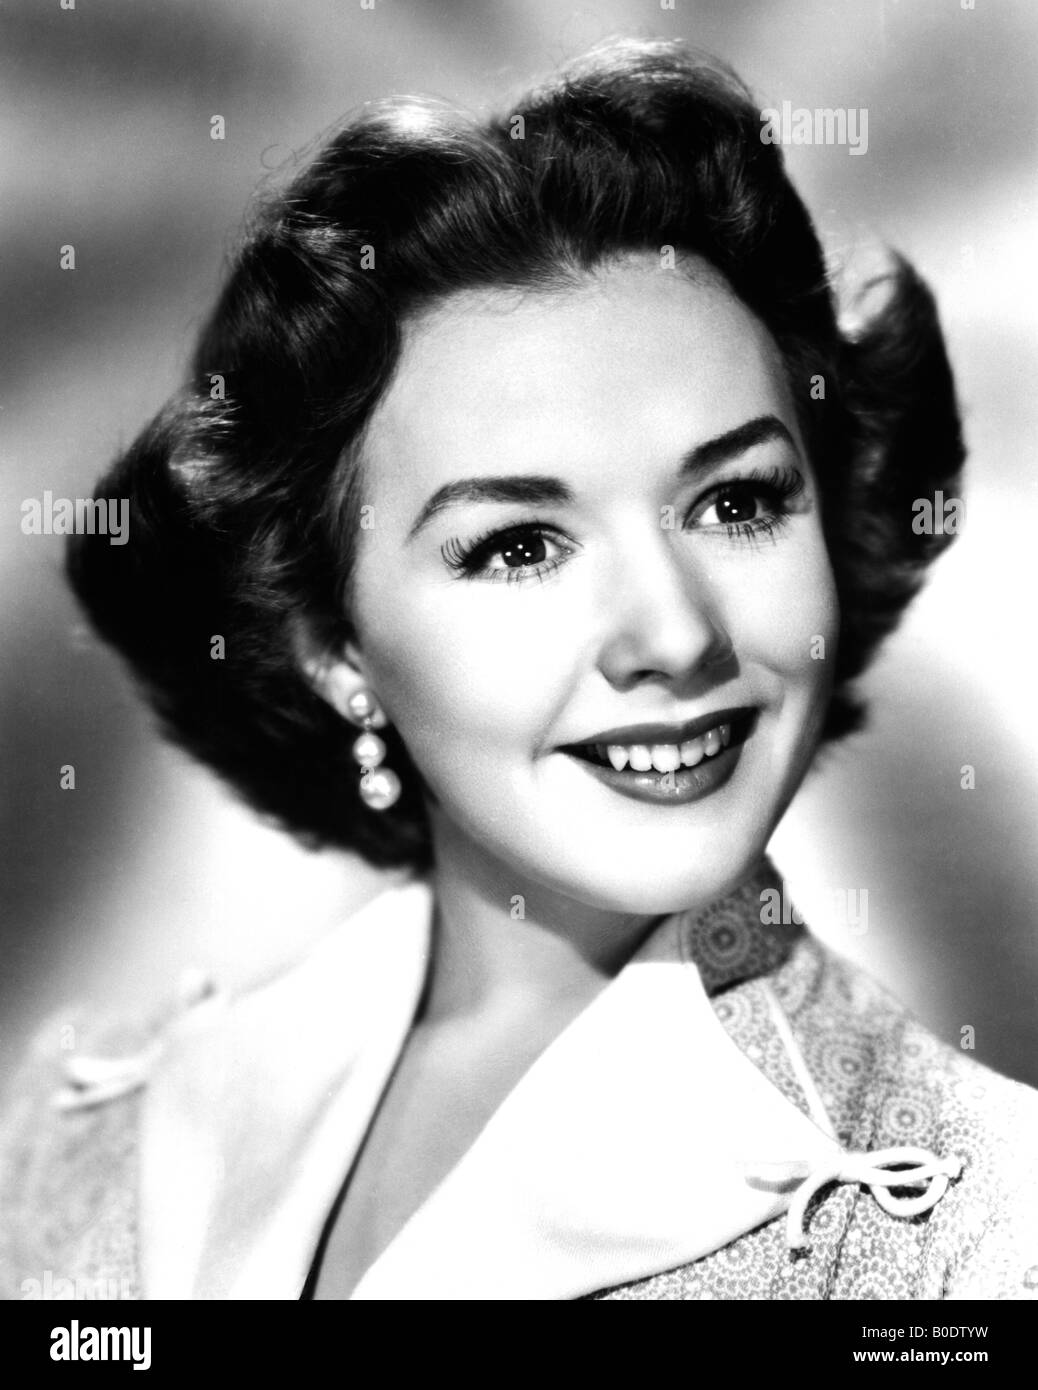 PIPER LAURIE - US film actress - Stock Image